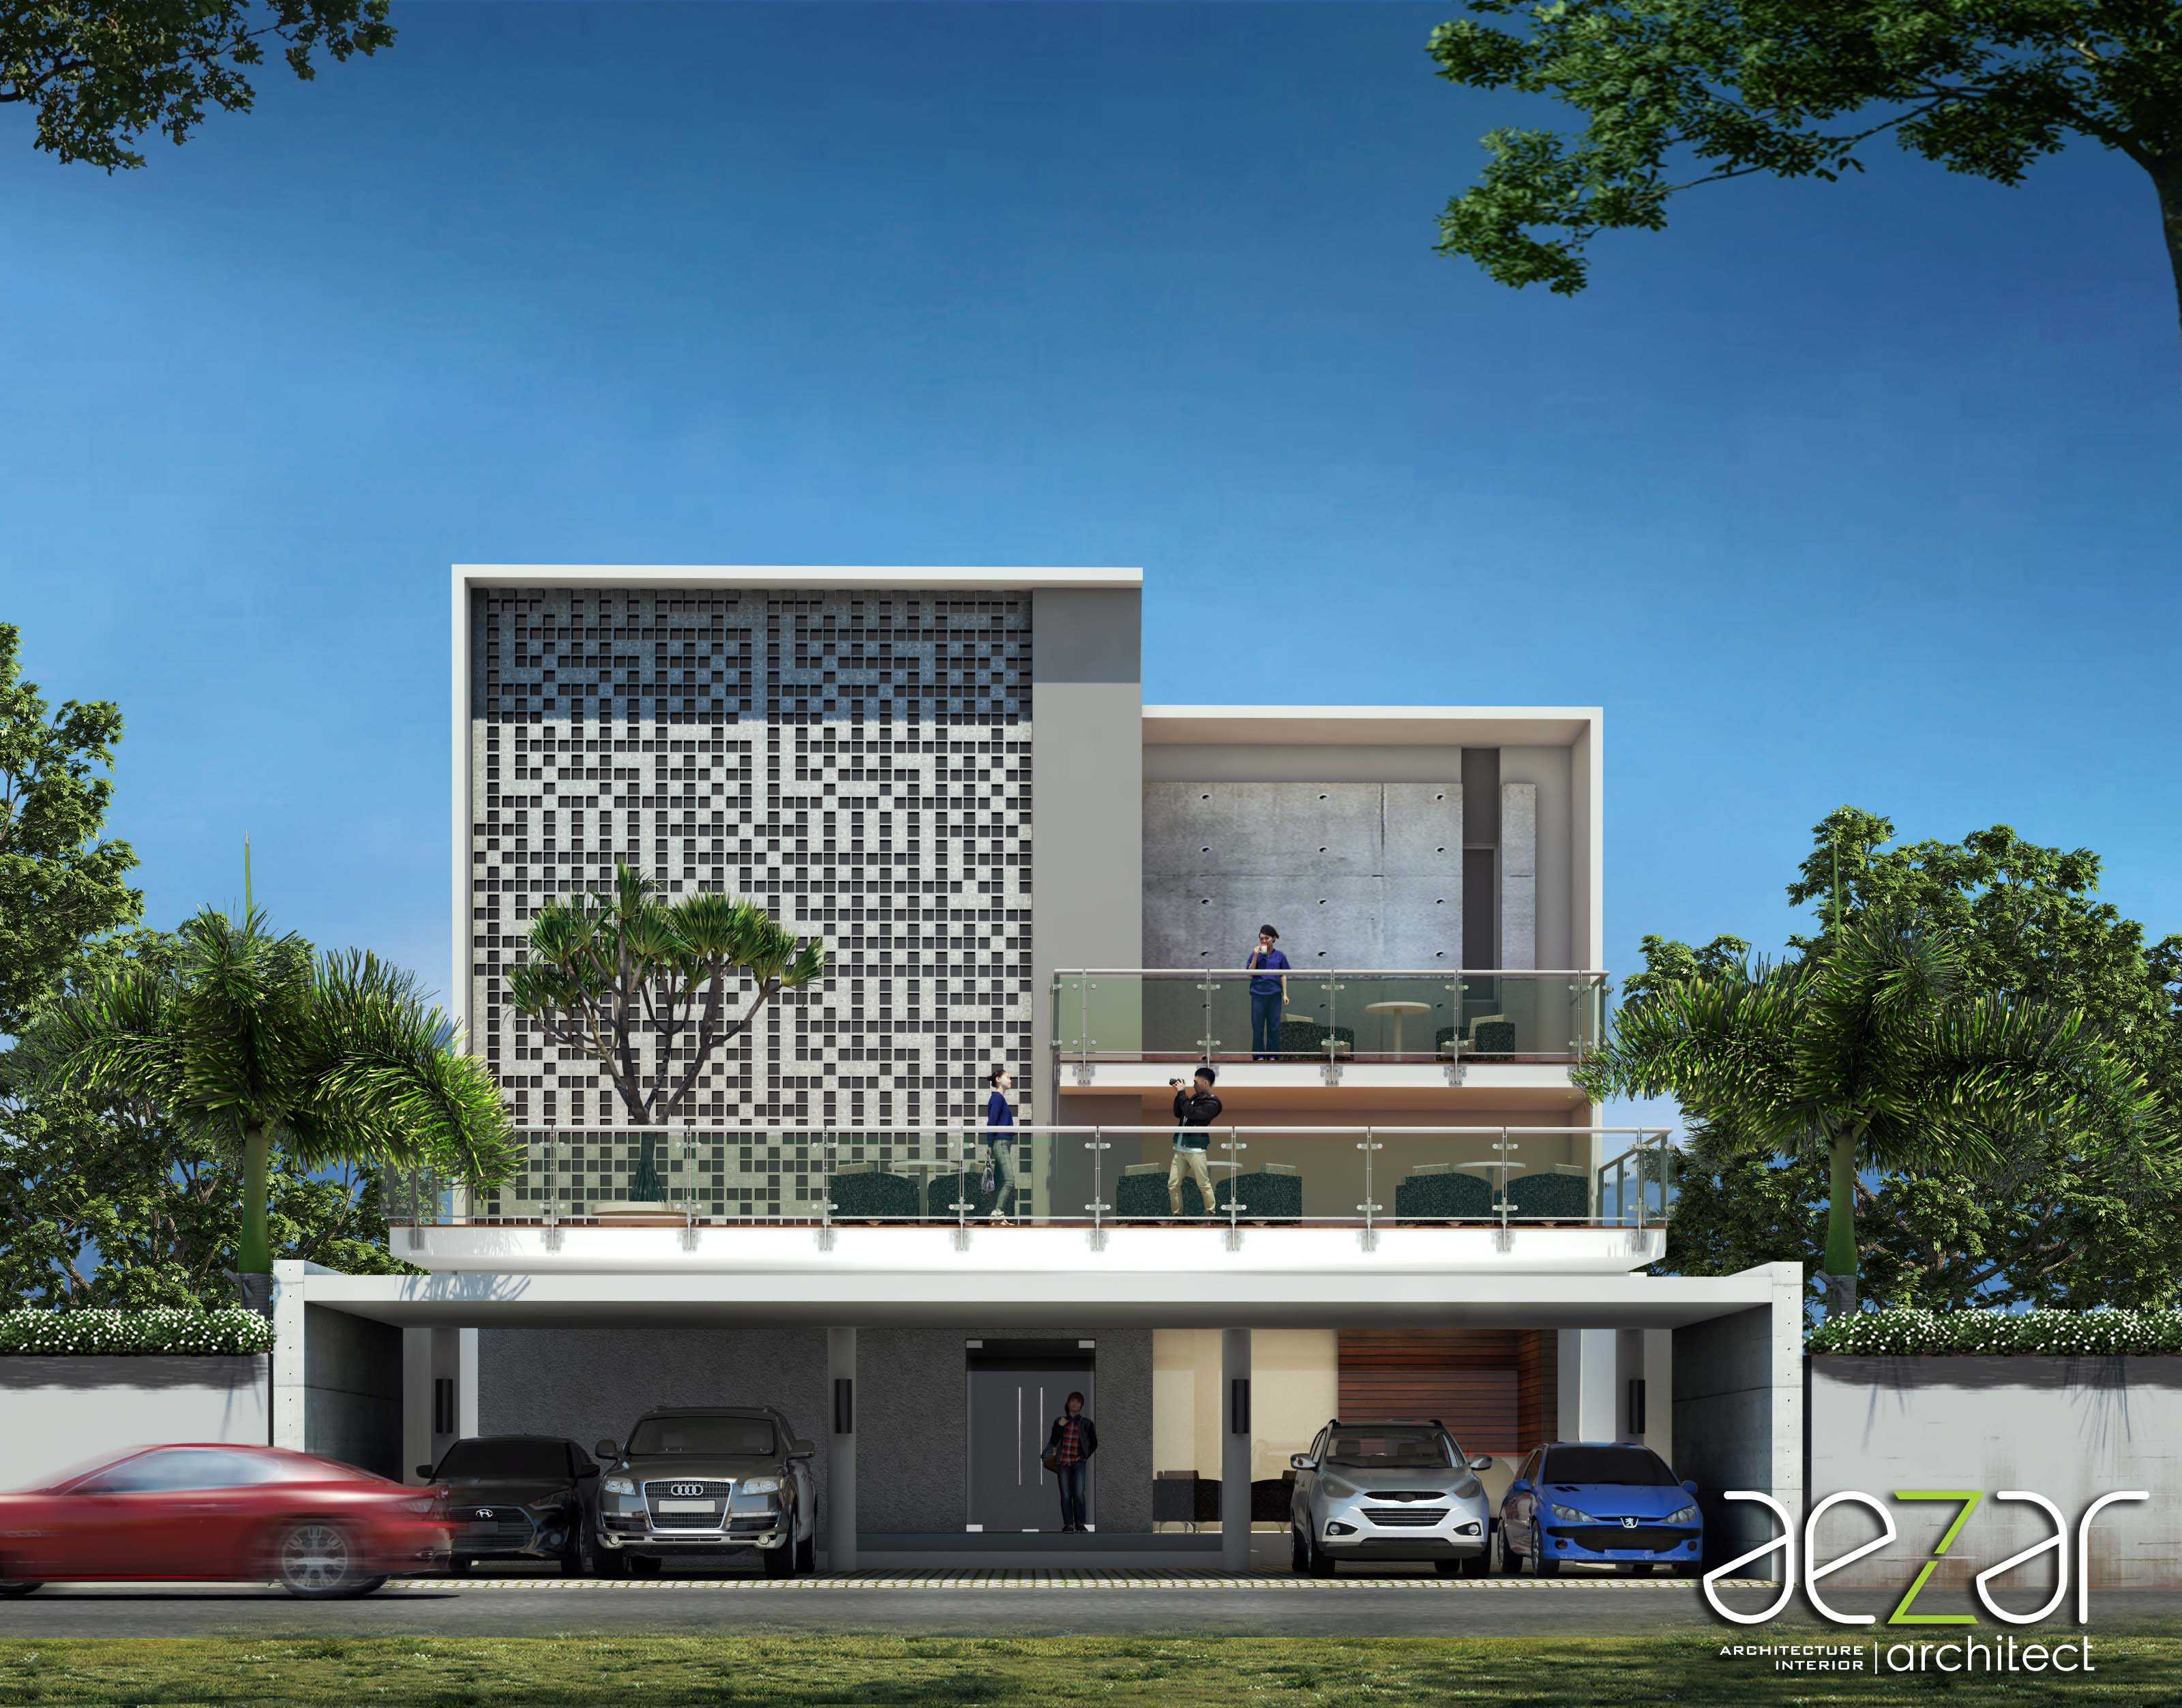 Aezar Architect Alam Hotel Kabupaten Banyuwangi, Jawa Timur, Indonesia Kabupaten Banyuwangi, Jawa Timur, Indonesia Front View Contemporary  54471